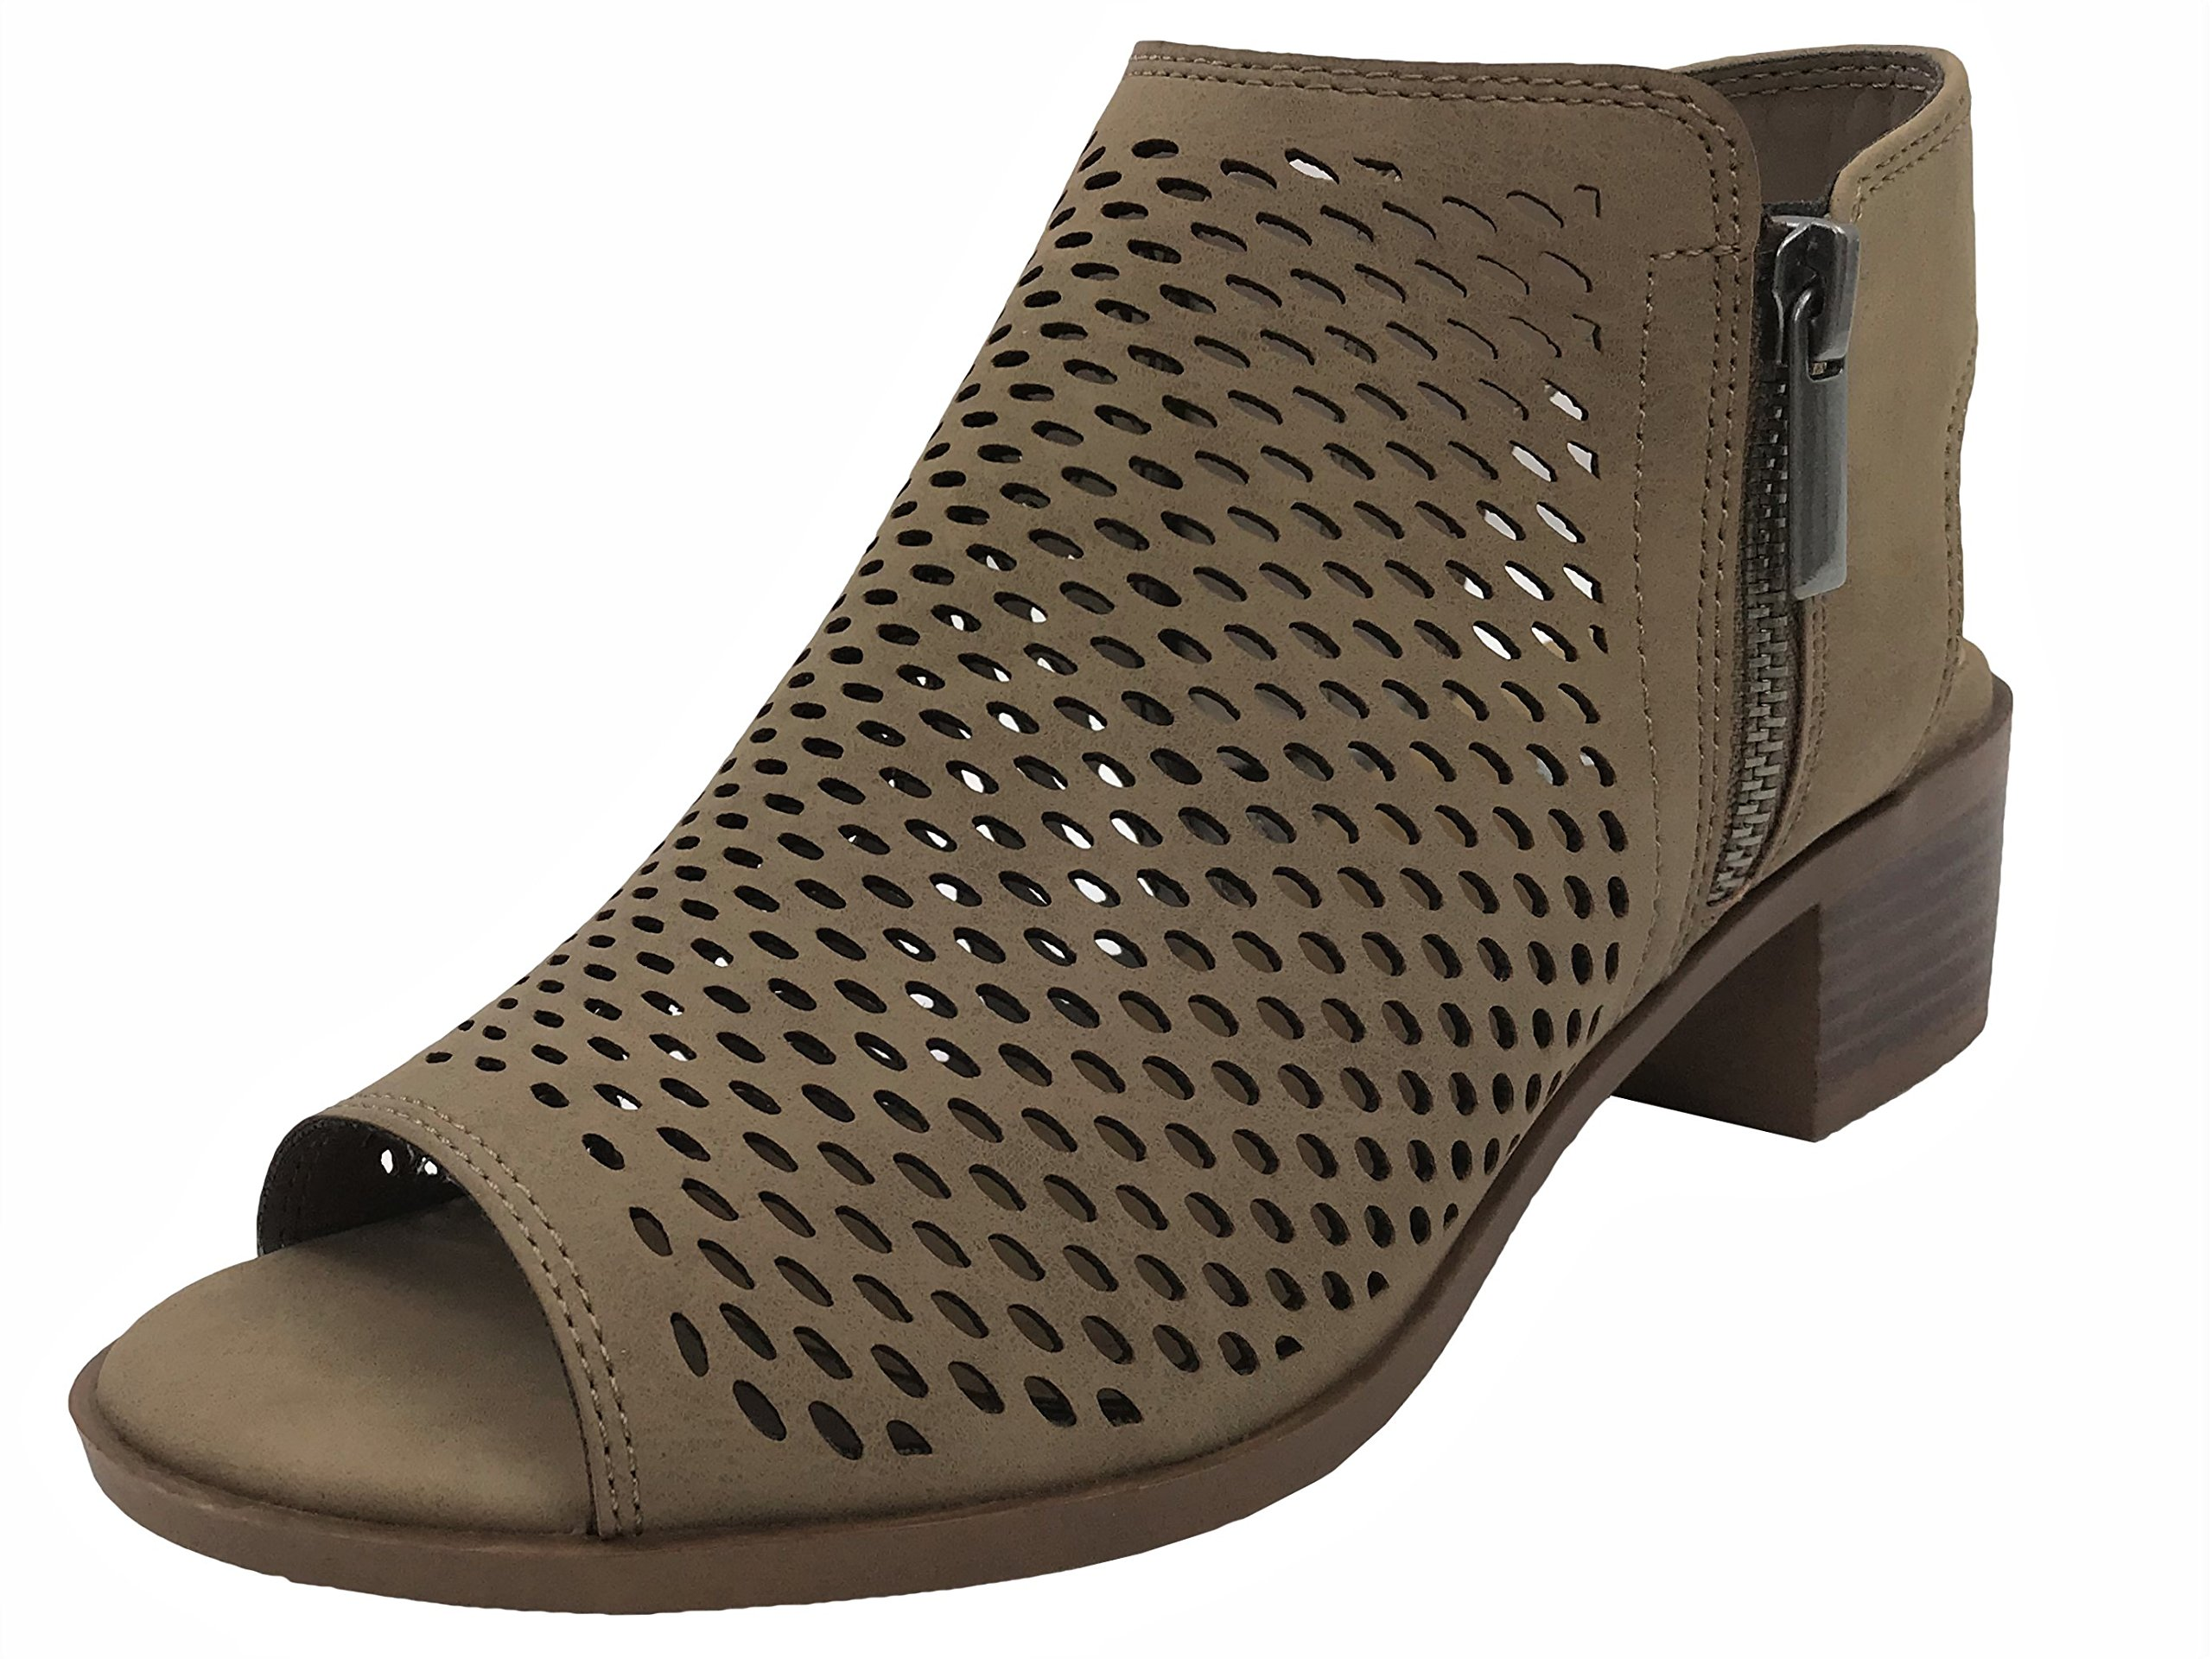 Soda Open Toe Ankle Strap Bootie Sandal Low Heel Perforated Cutout, Taupe, 8